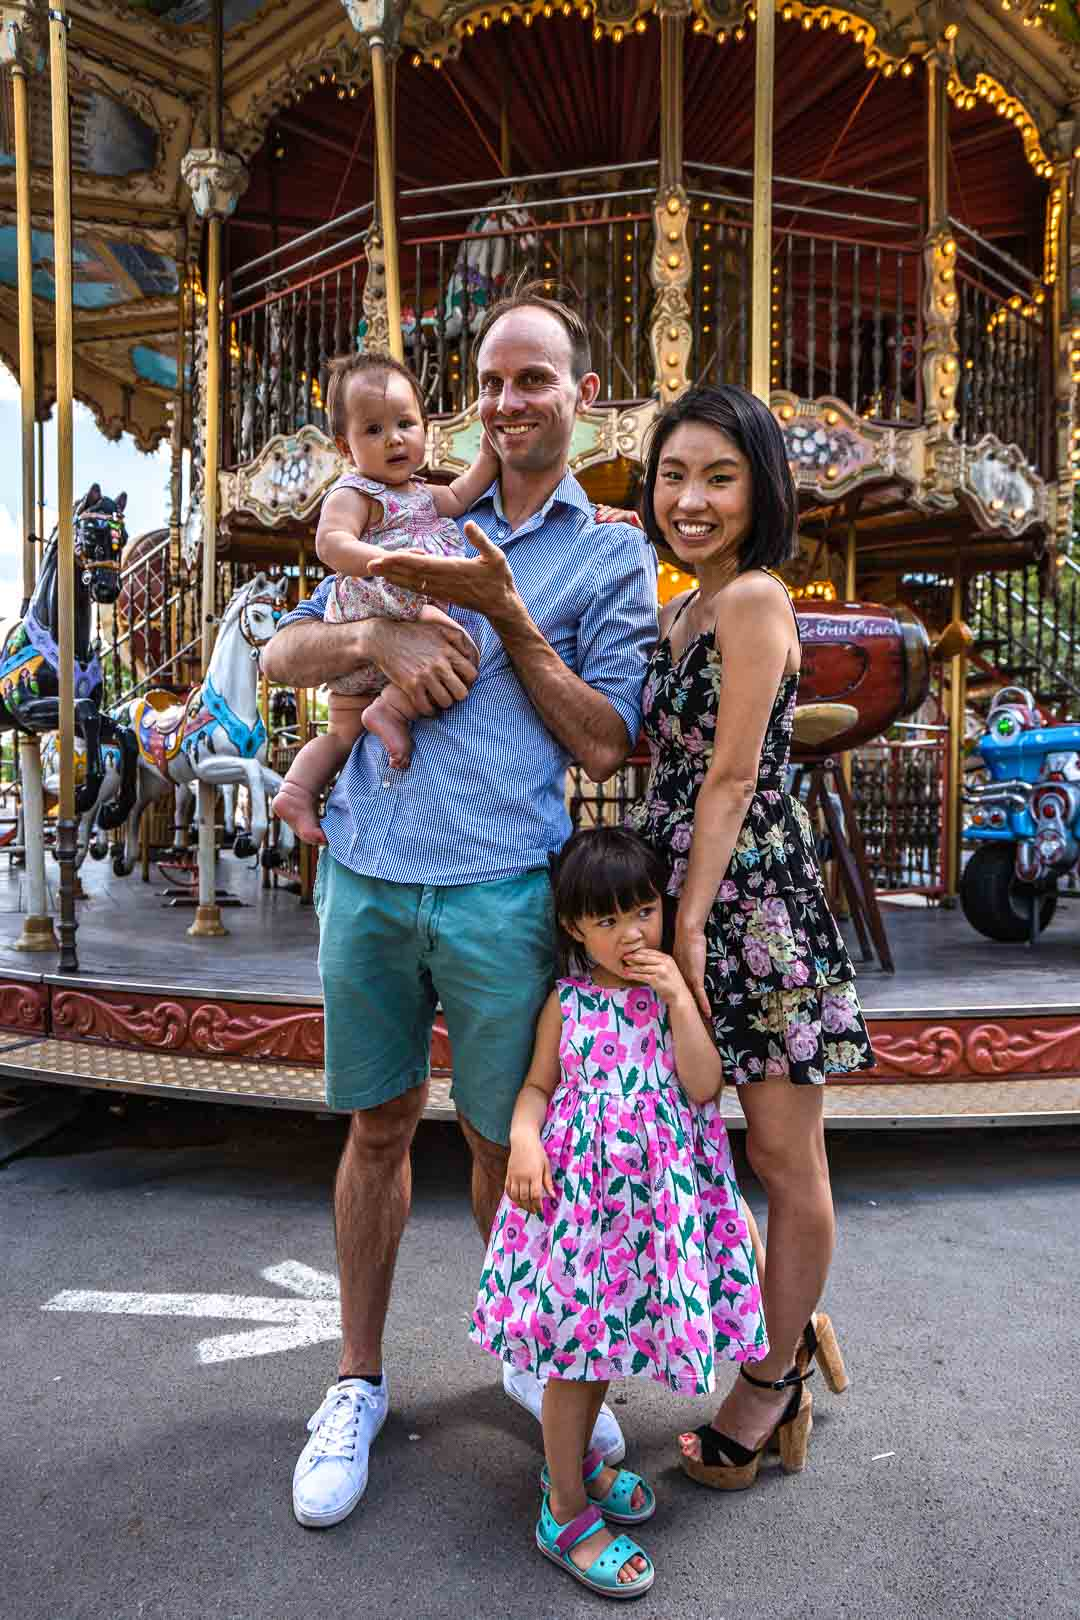 Family portrait in front of the Eiffel Tower carousel